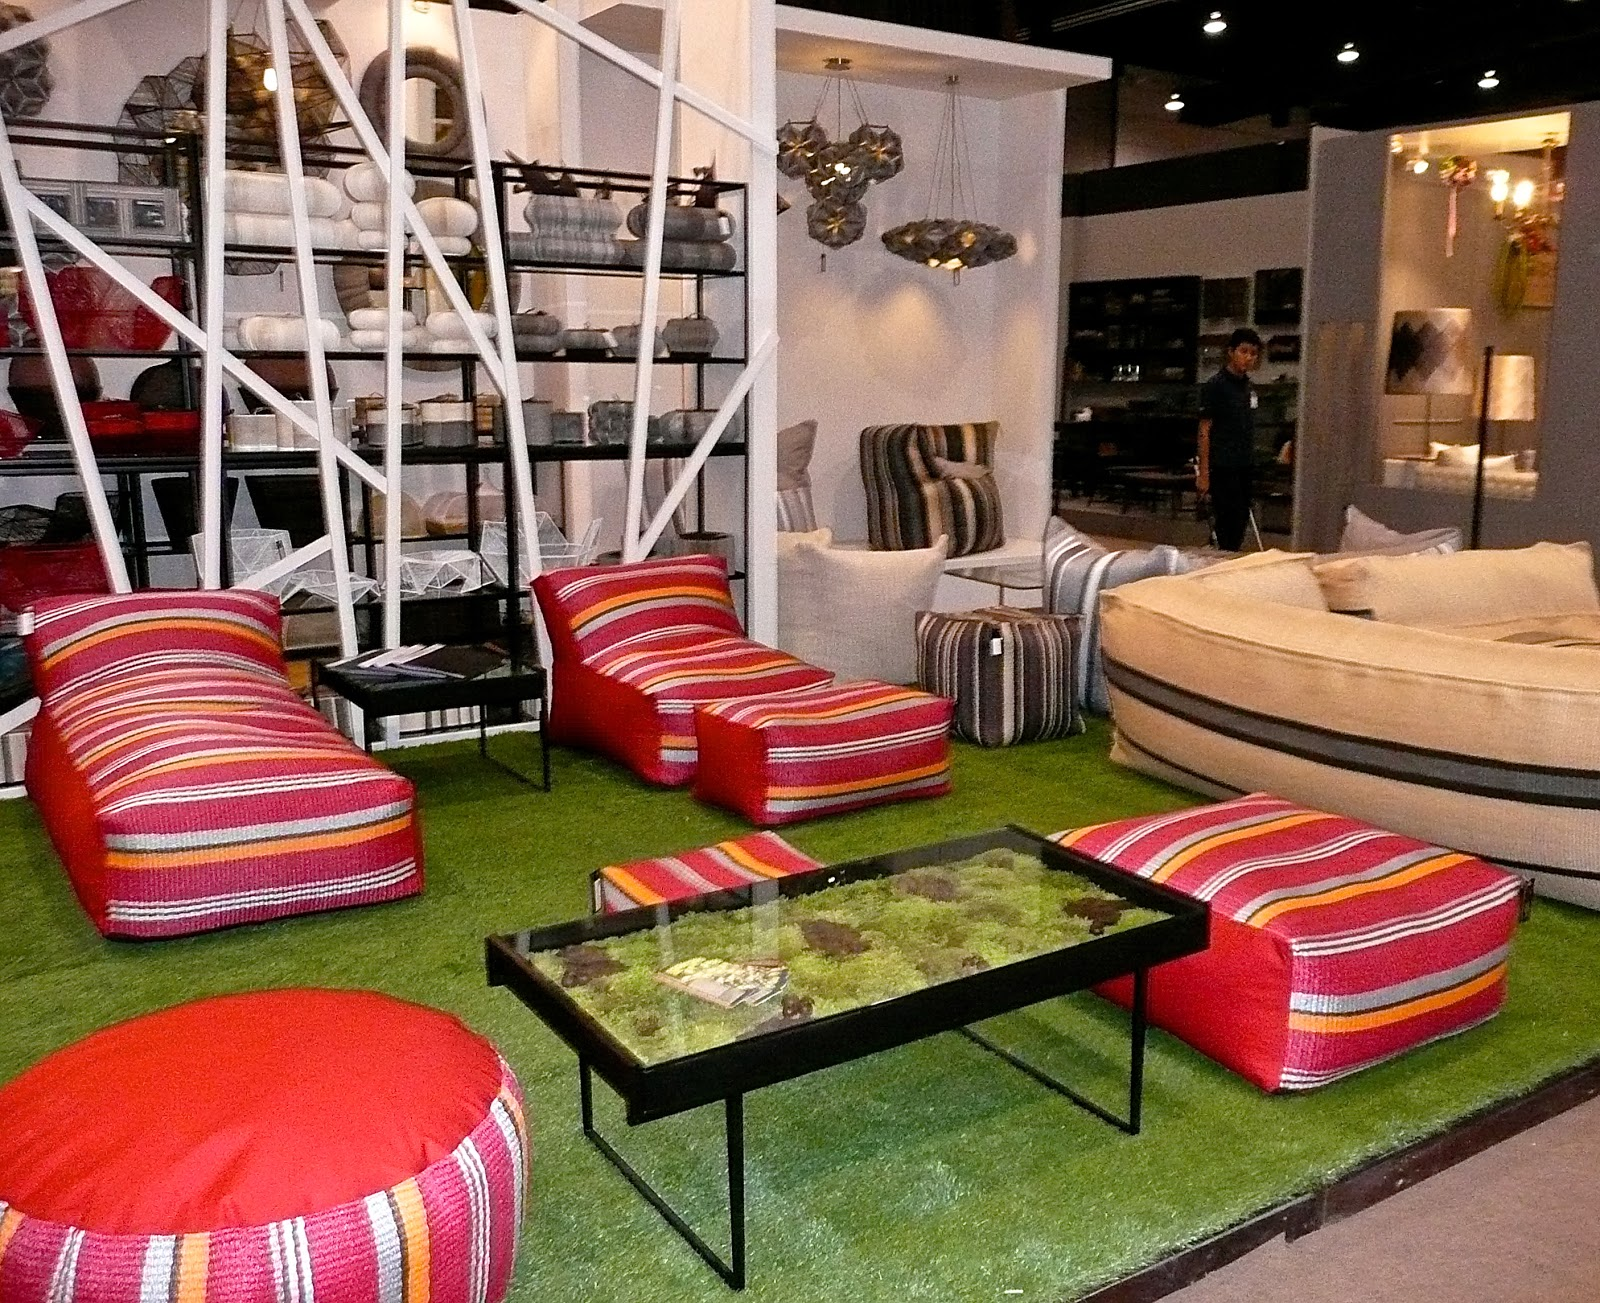 Chair Design Bangkok Party City Baby Shower Rental International Gift Housewares Fair Top Picks Attuned To These Sofas And Slipper Chairs Chaises Ottomans By Ayodhya Bring A Whole New Meaning Lounging Poolside They Re Made Of 100 Woven Polyester